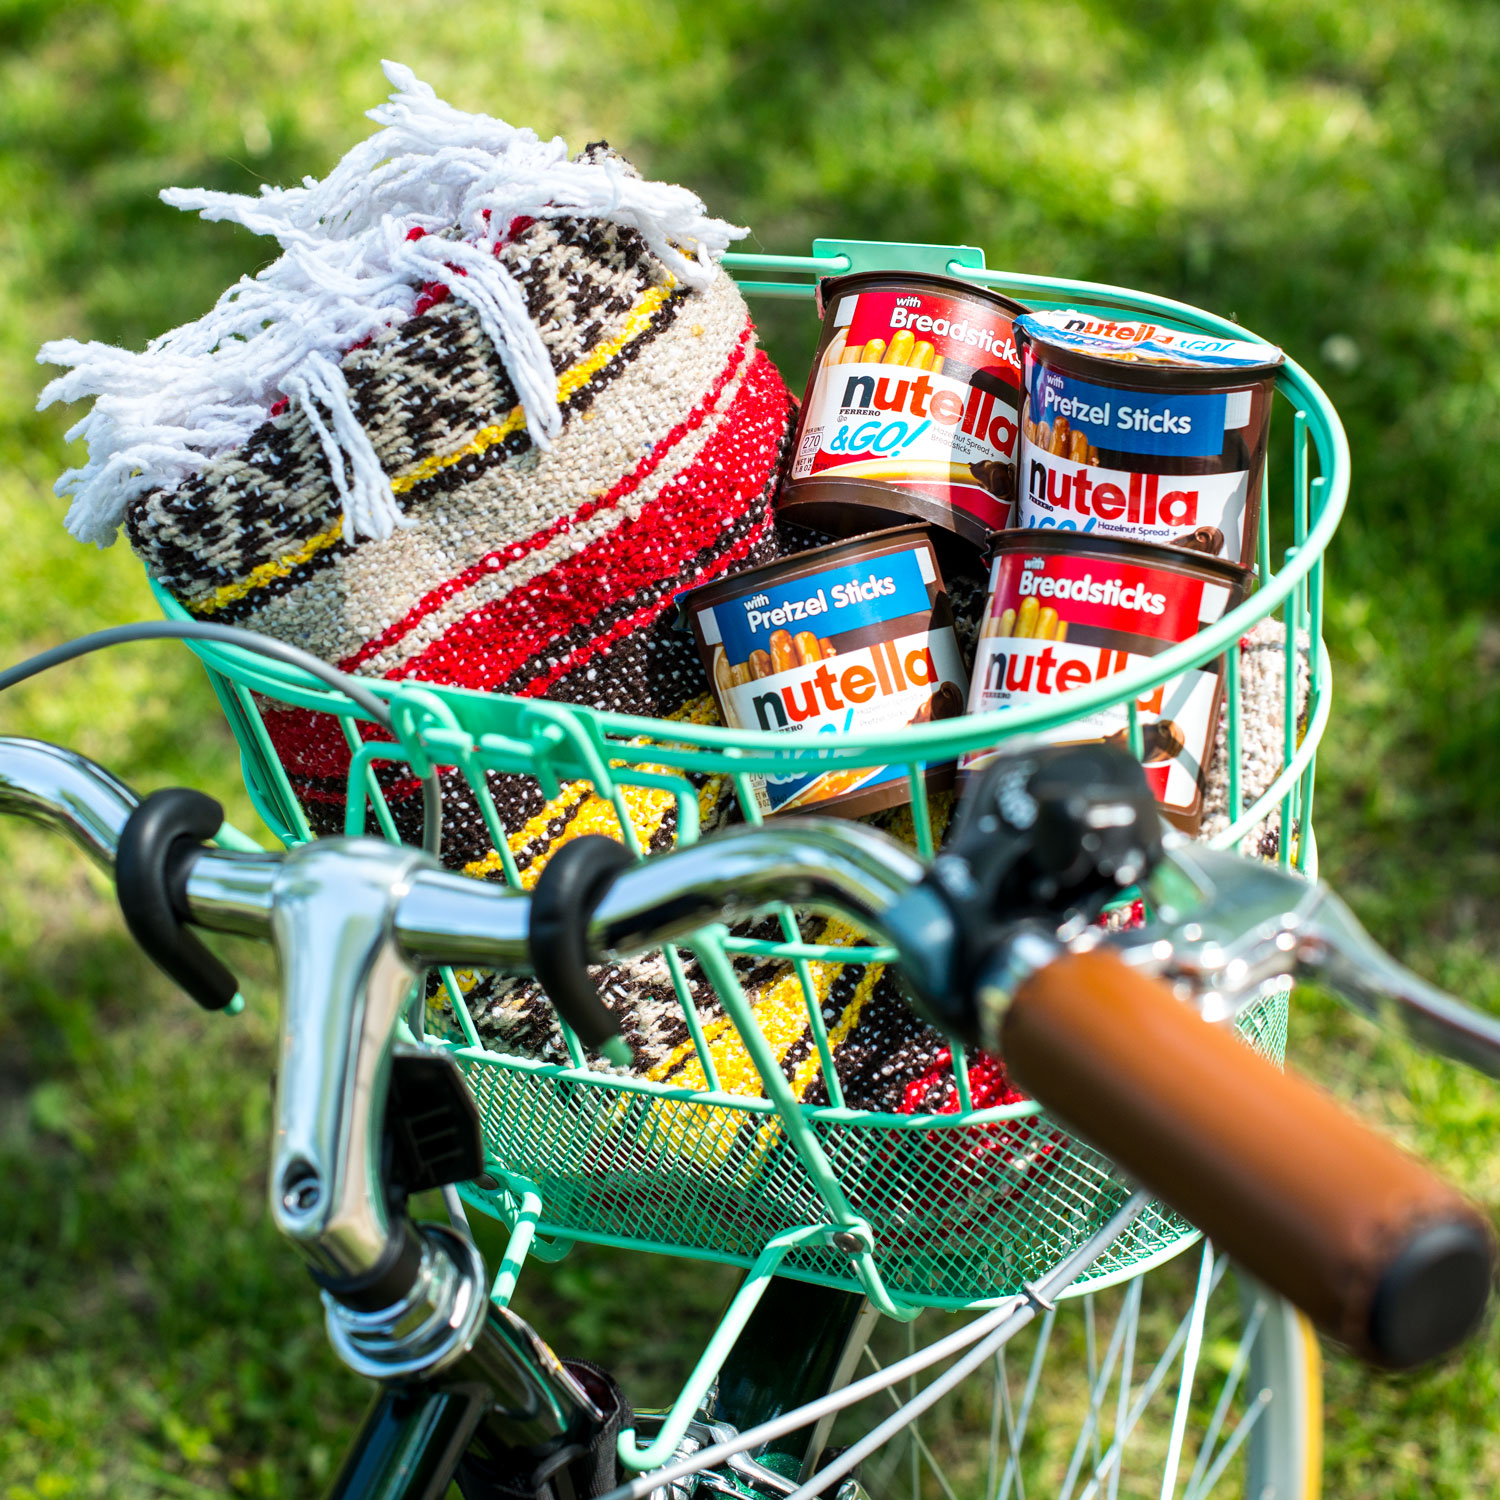 MOH-Nutella-Bike.jpg